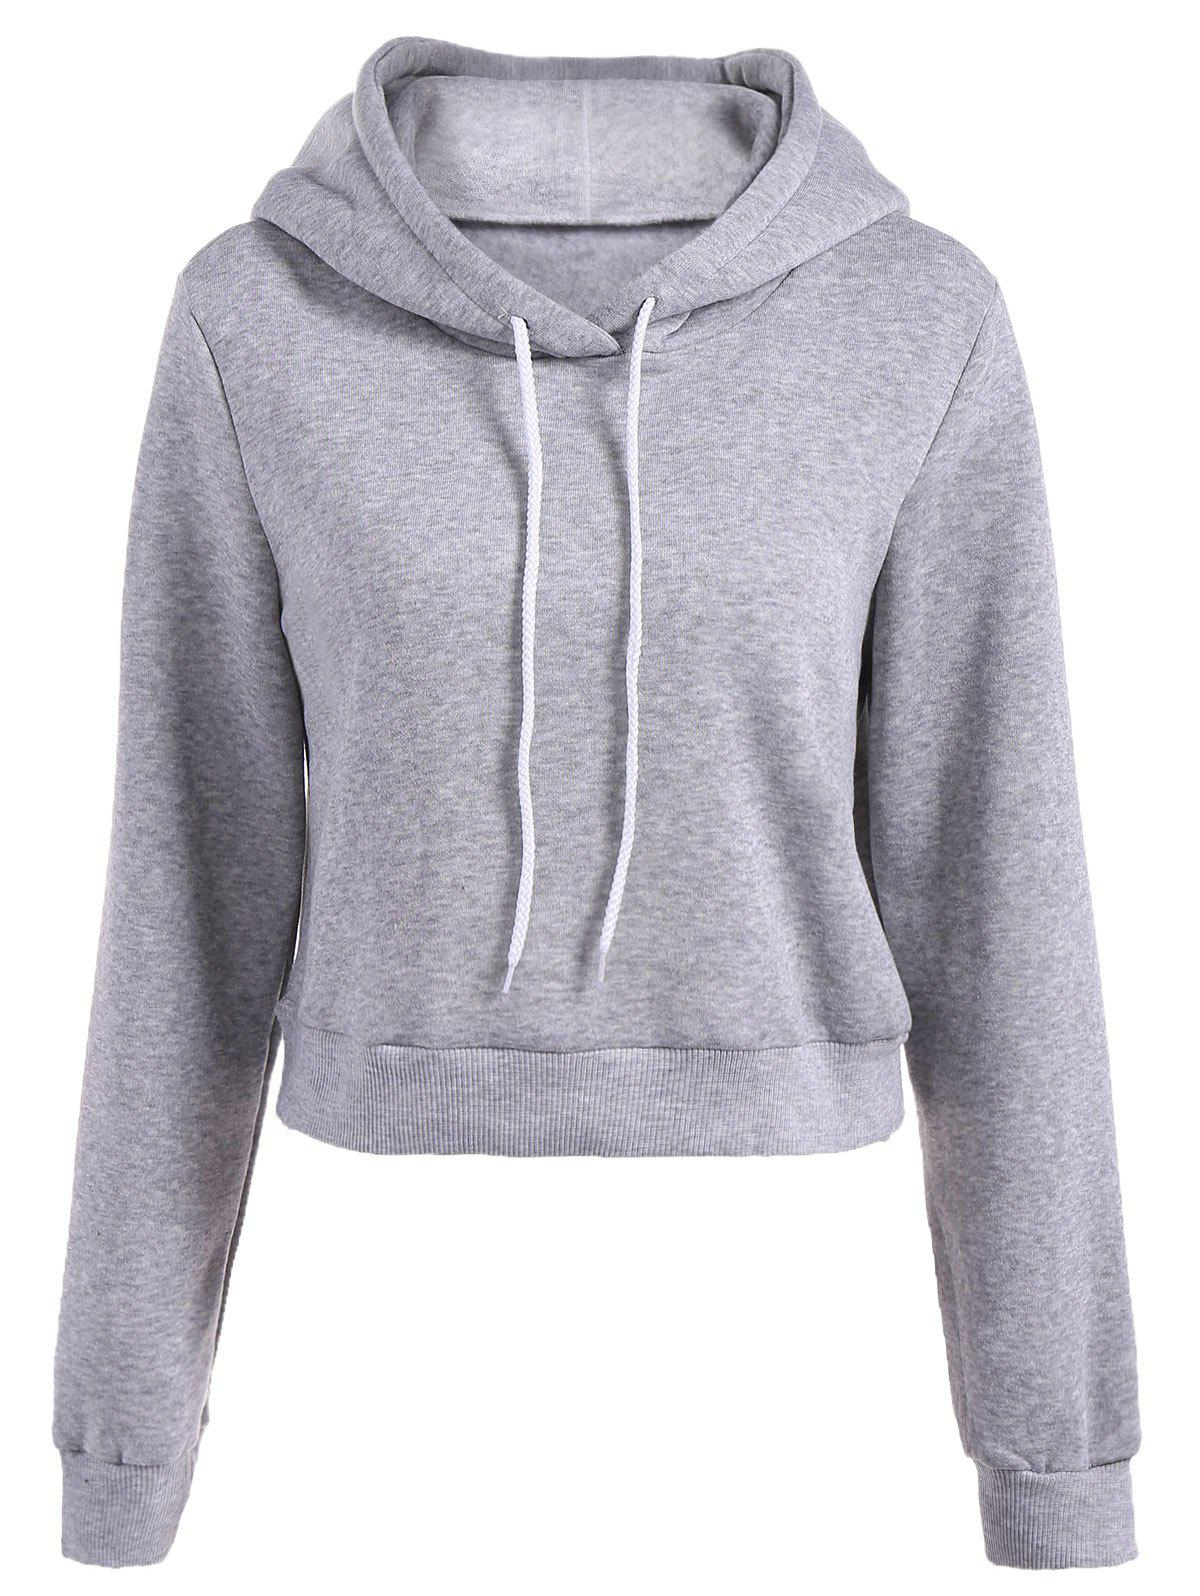 Long Sleeve Drawstring Thicken Hoodie - LIGHT GRAY M